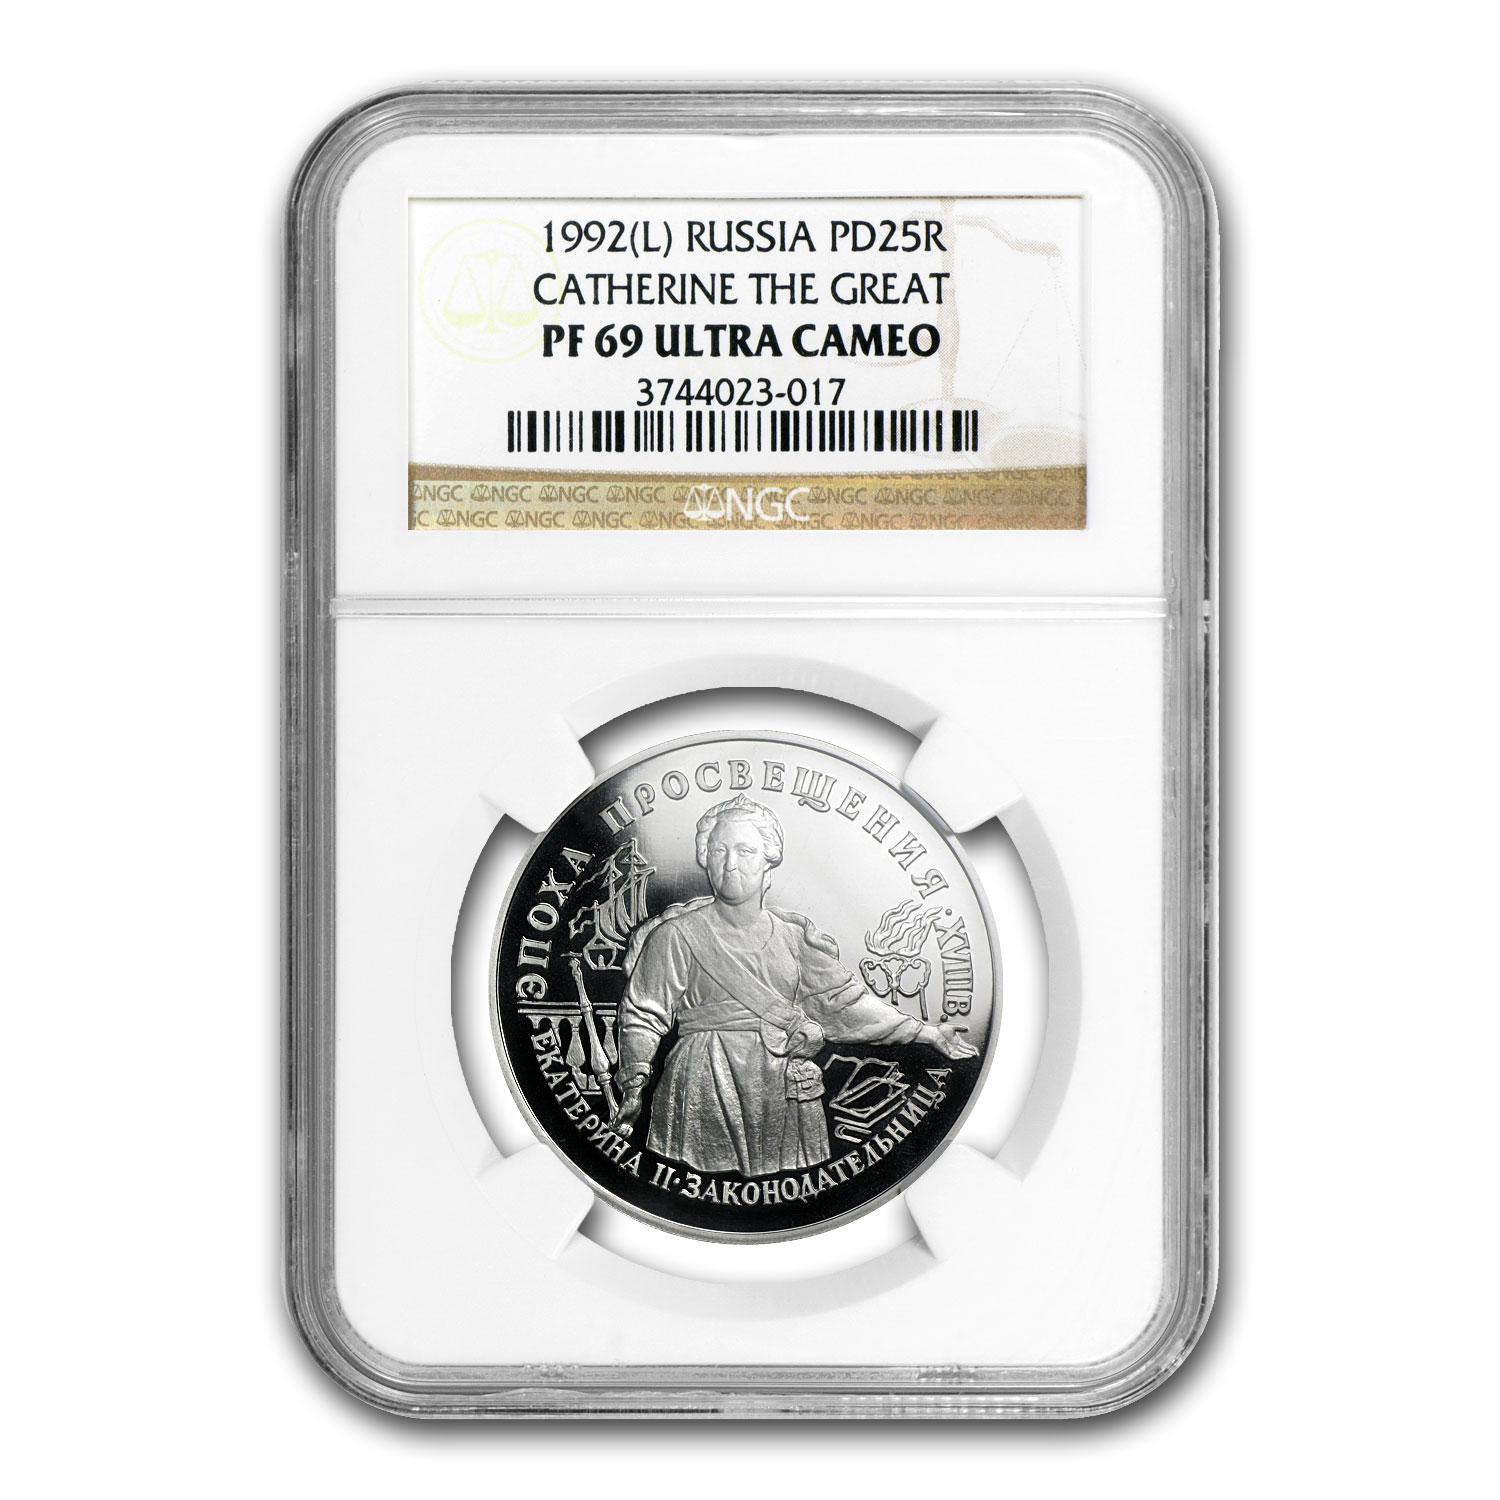 1992 Russia 1 oz Palladium Catherine The Great PF-69 NGC